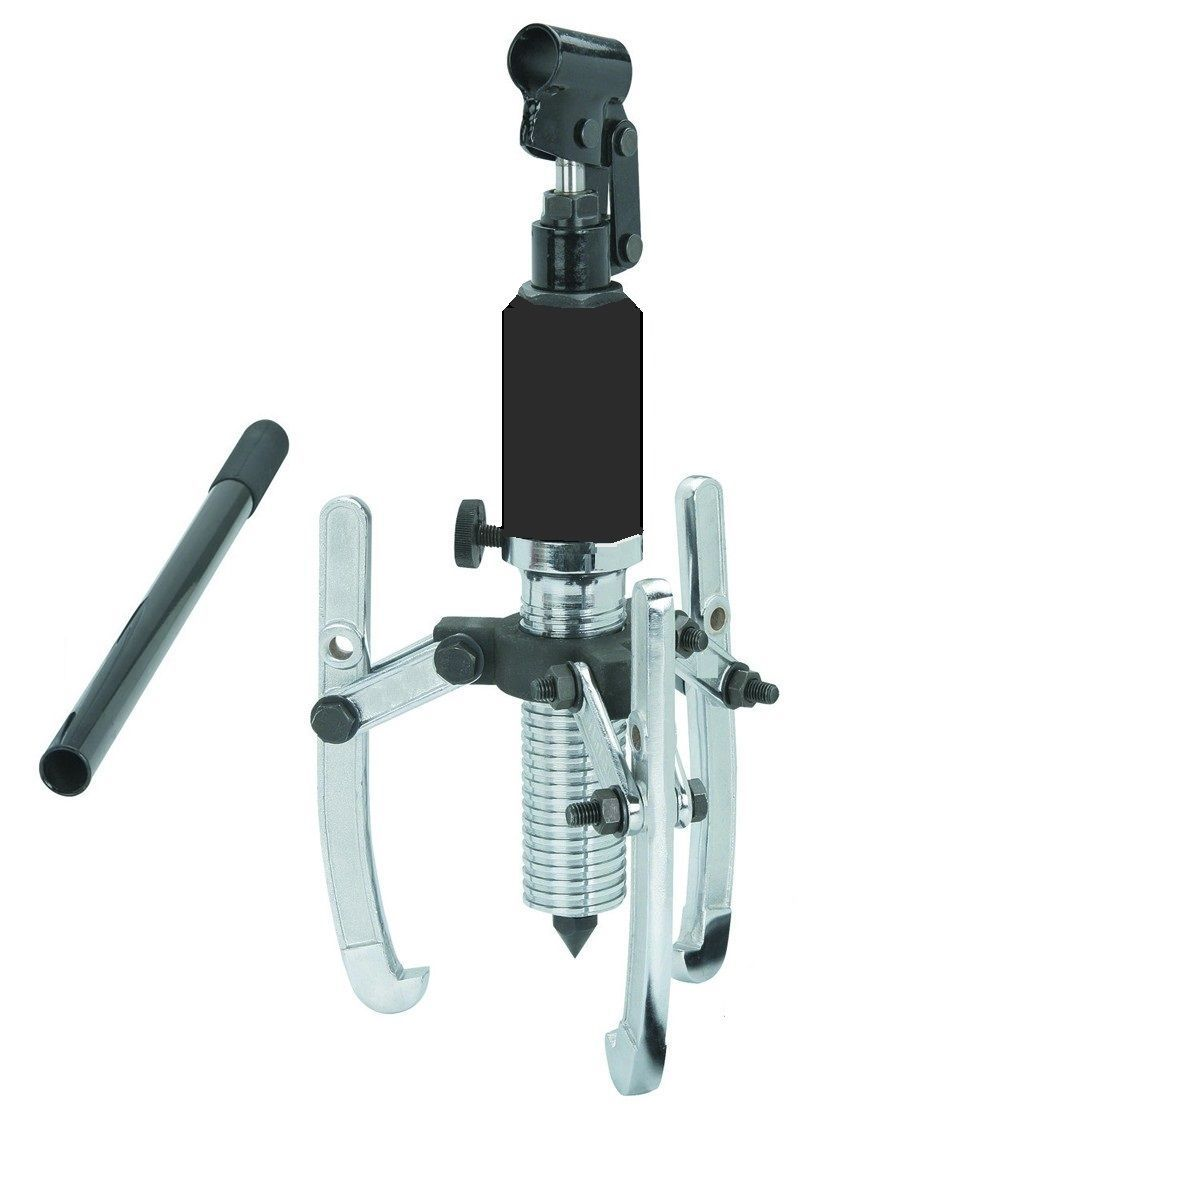 Best Gear Pullers : Ton portable three jaw hydraulic gear puller other